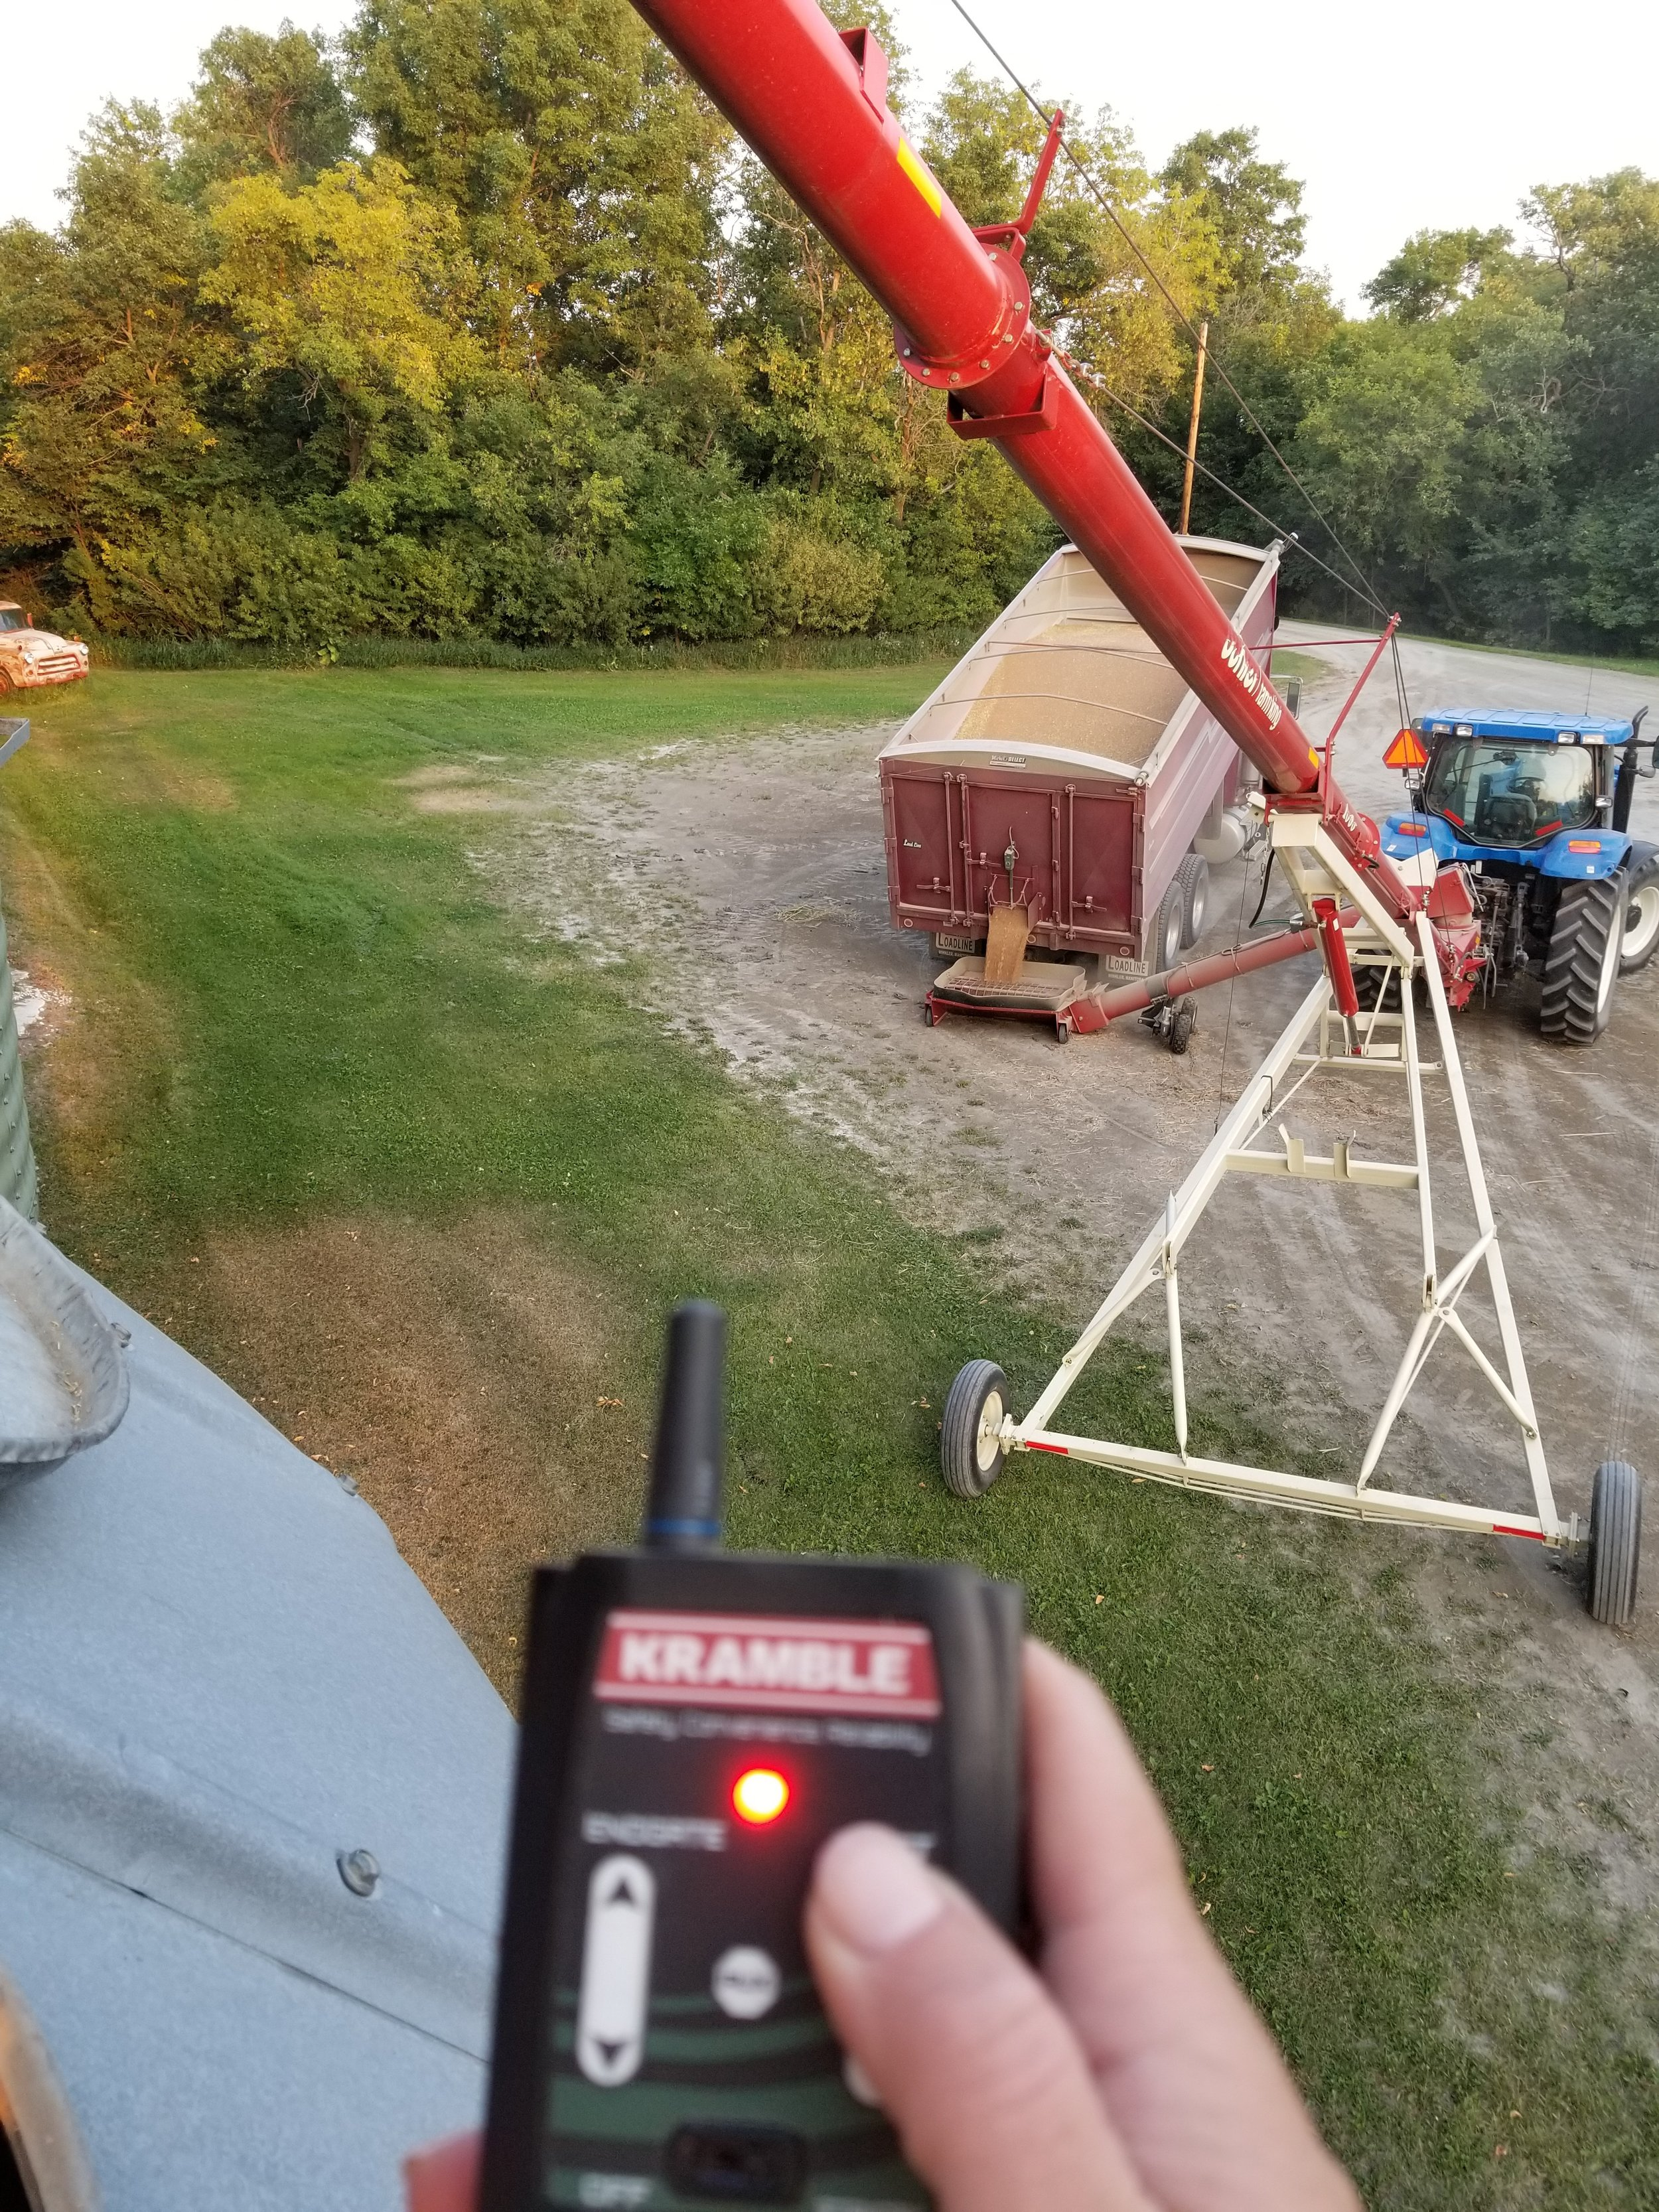 Box & endgate remote lift - 4 benefits1. Increased distance from the auger2. Easily able to lift the box and/or endgate from various locations3. Can keep unloading while checking on how full the bin is4. Able to stay out of the dust - which is a huge benefit when the truck is full of oats (ITCHY!!!!)